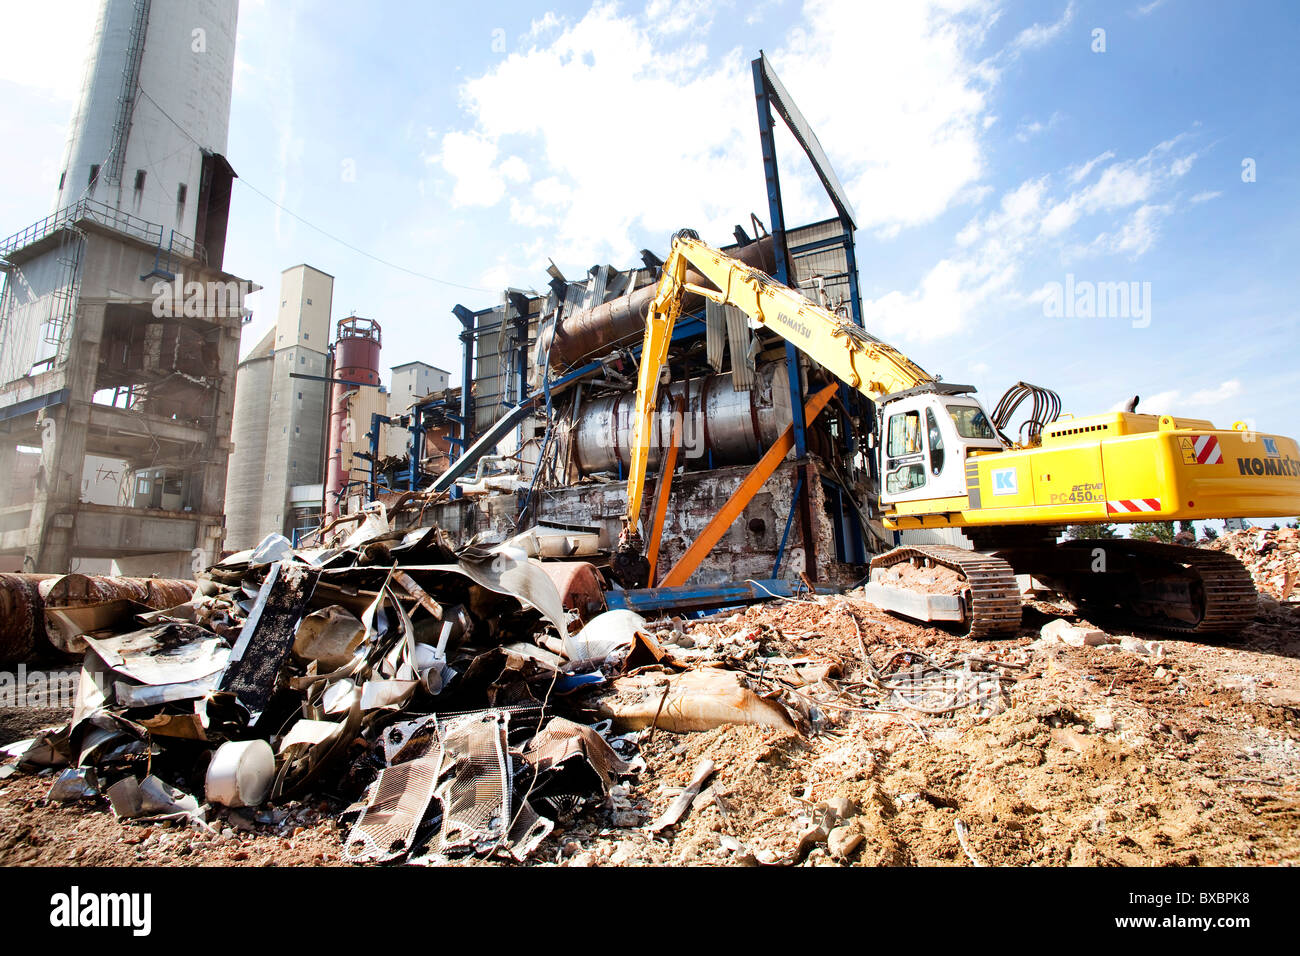 Demolition work on the disused sugar factory of Suedzucker AG, Regensburg, Bavaria, Germany, Europe - Stock Image